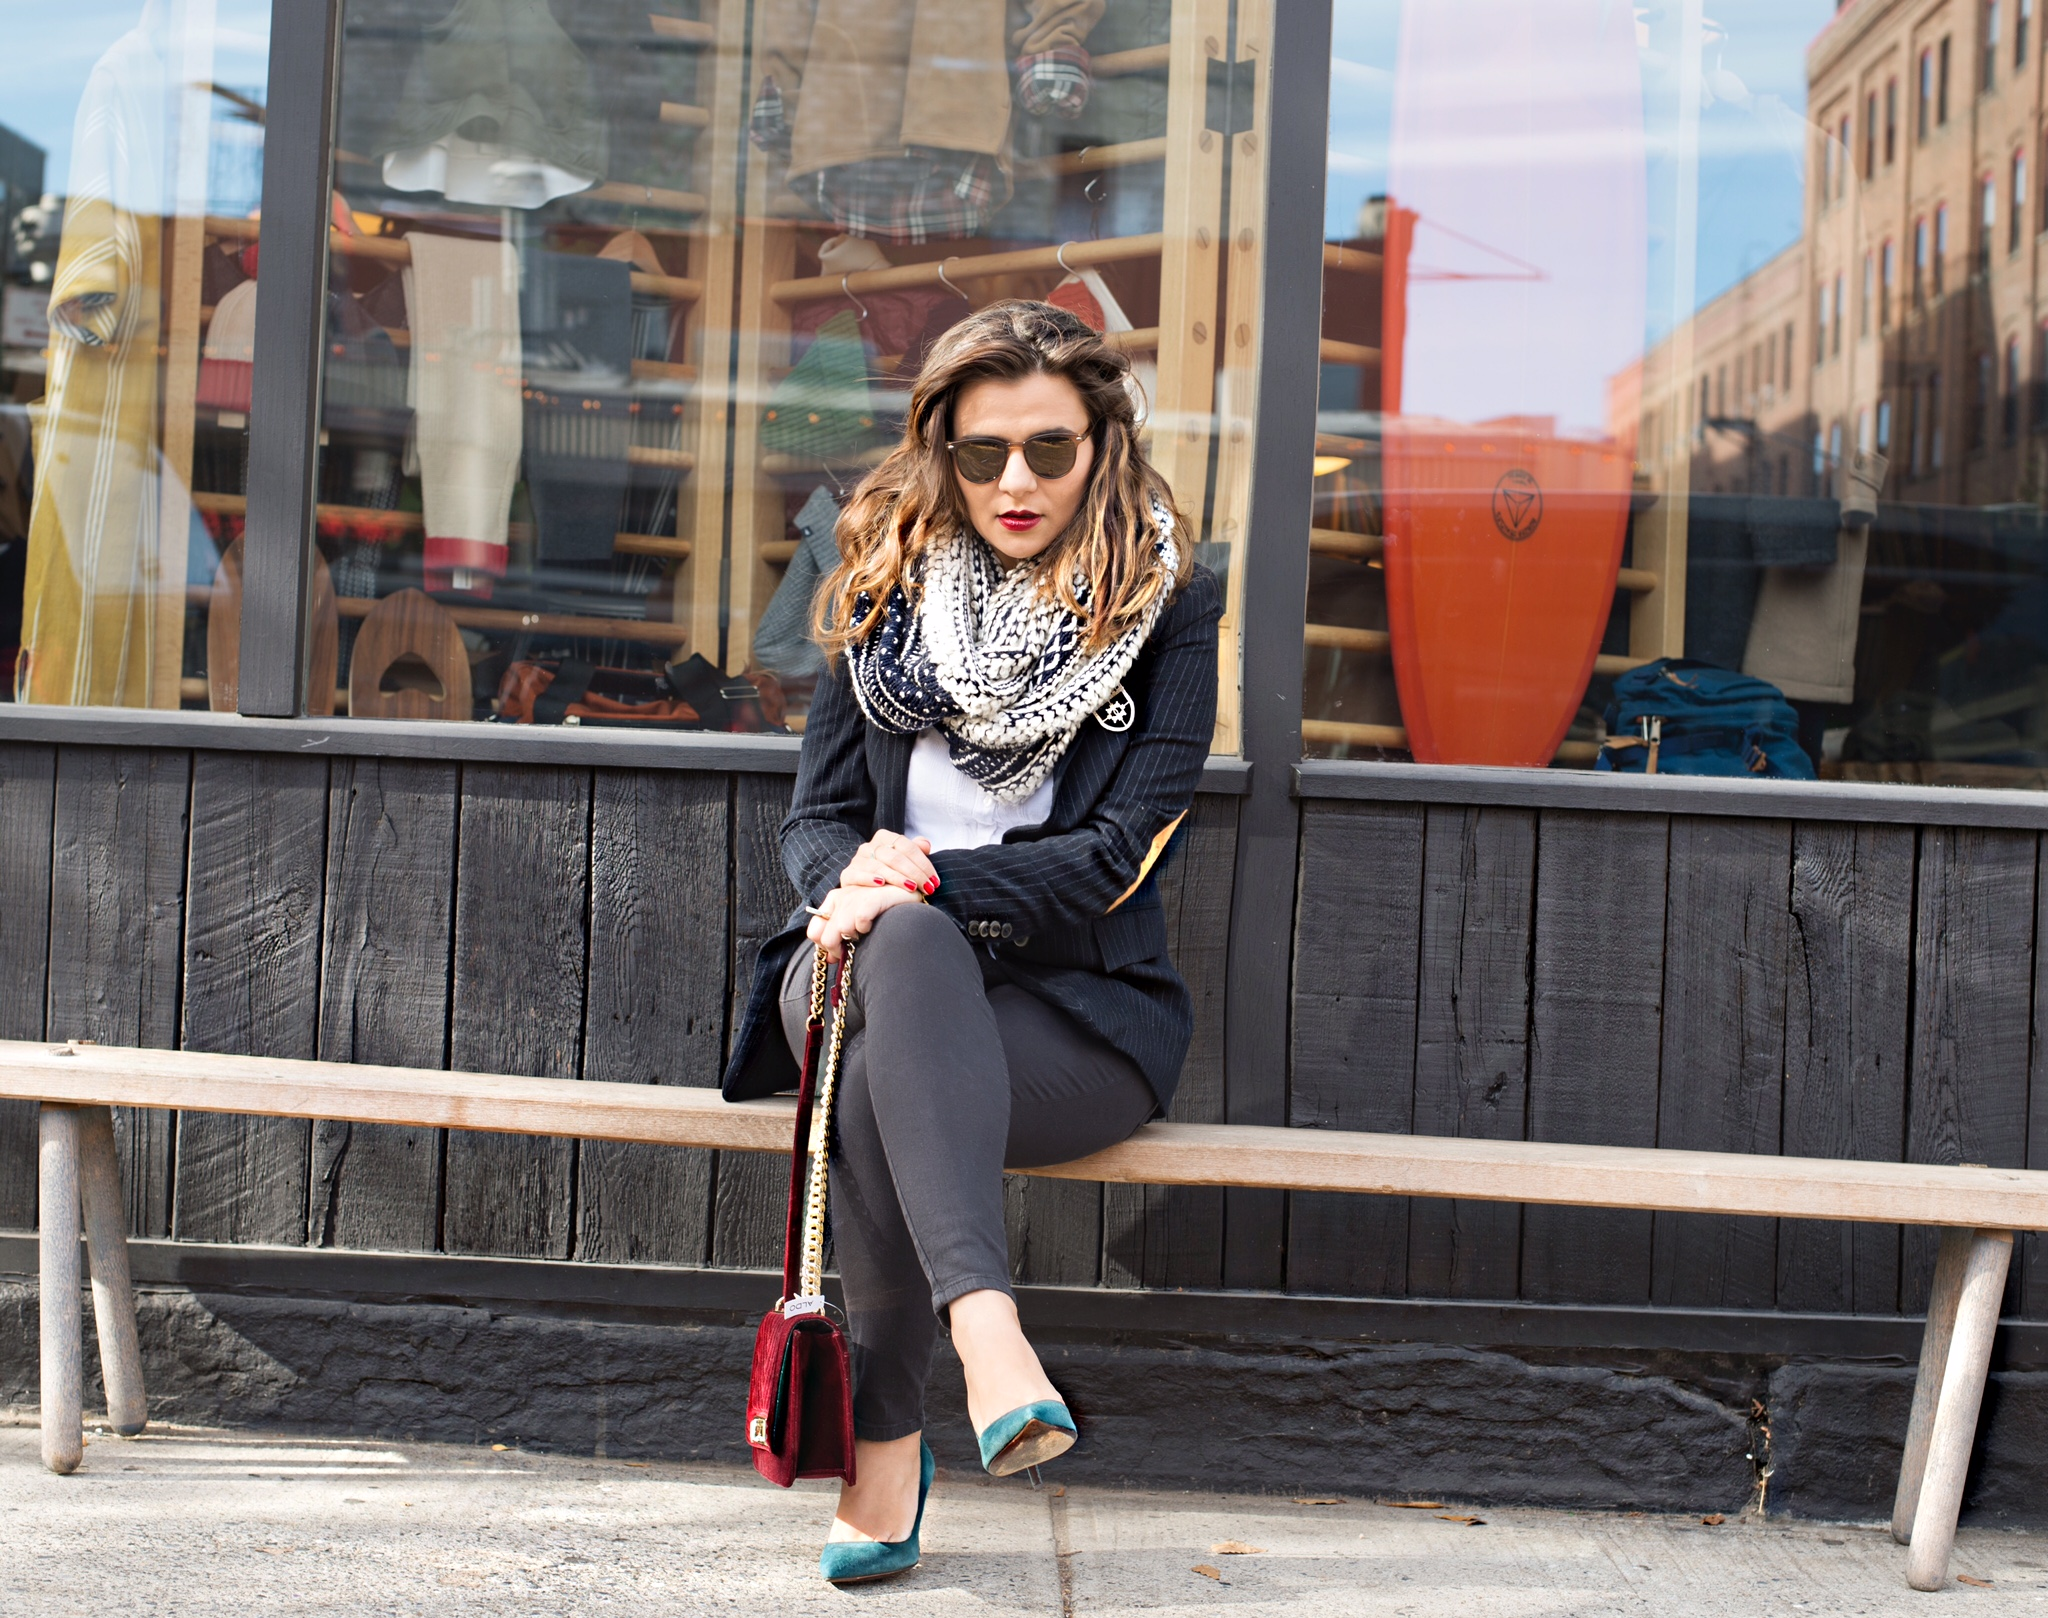 skinny-jeans-with-blazer-jacket-street-style-alley-girl-new-york-fashion-blogger